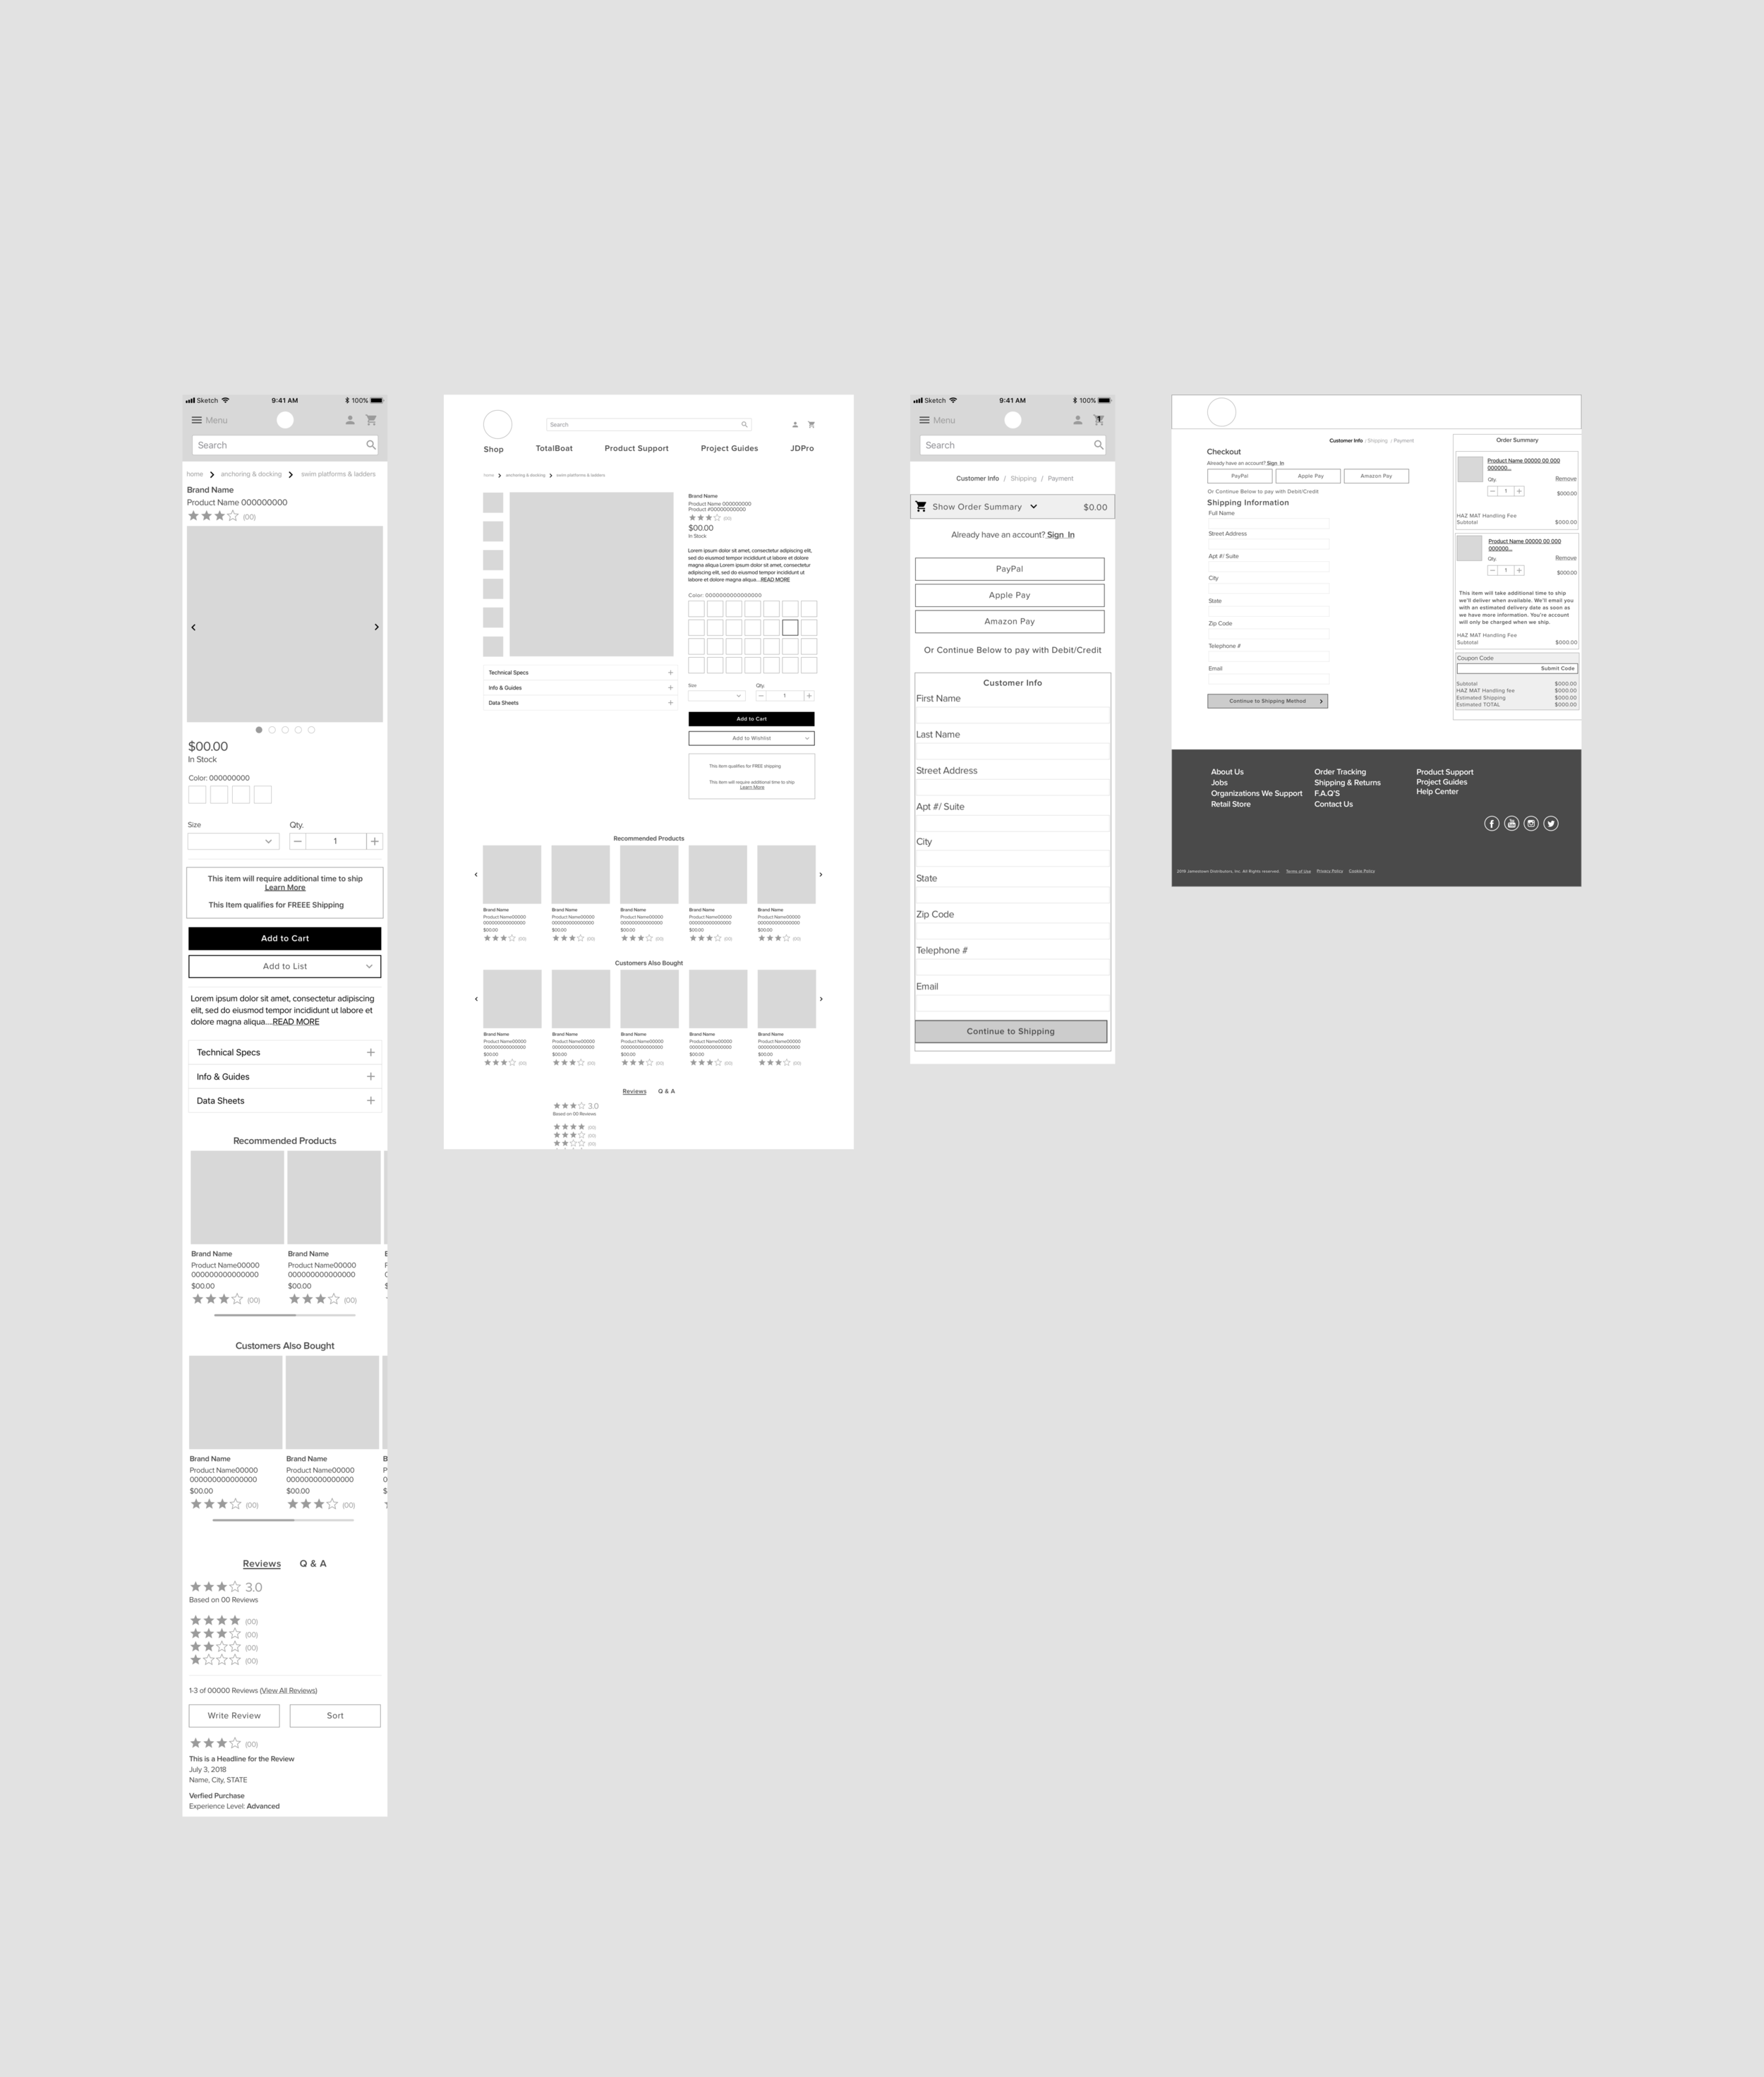 Initial Cart & Checkout wireframes (mobile & desktop)